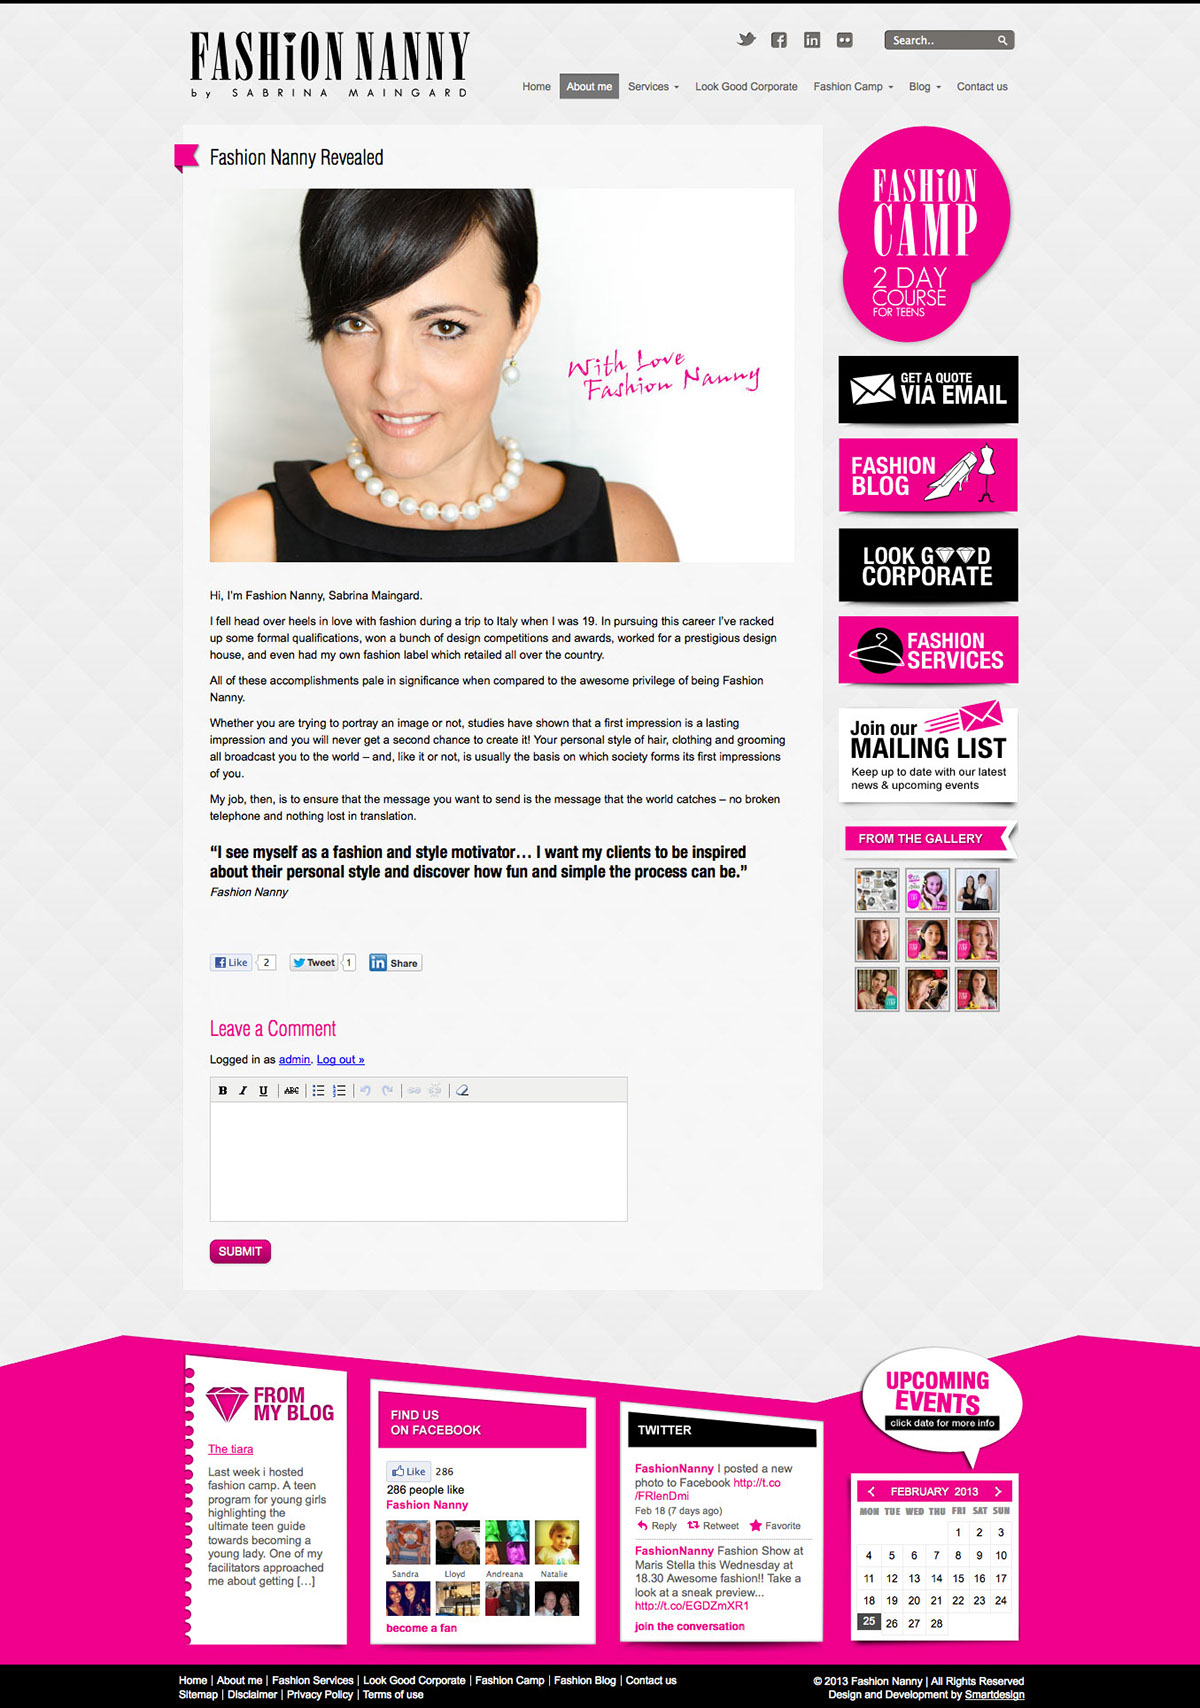 Design & Development of the Fashion Nanny Website